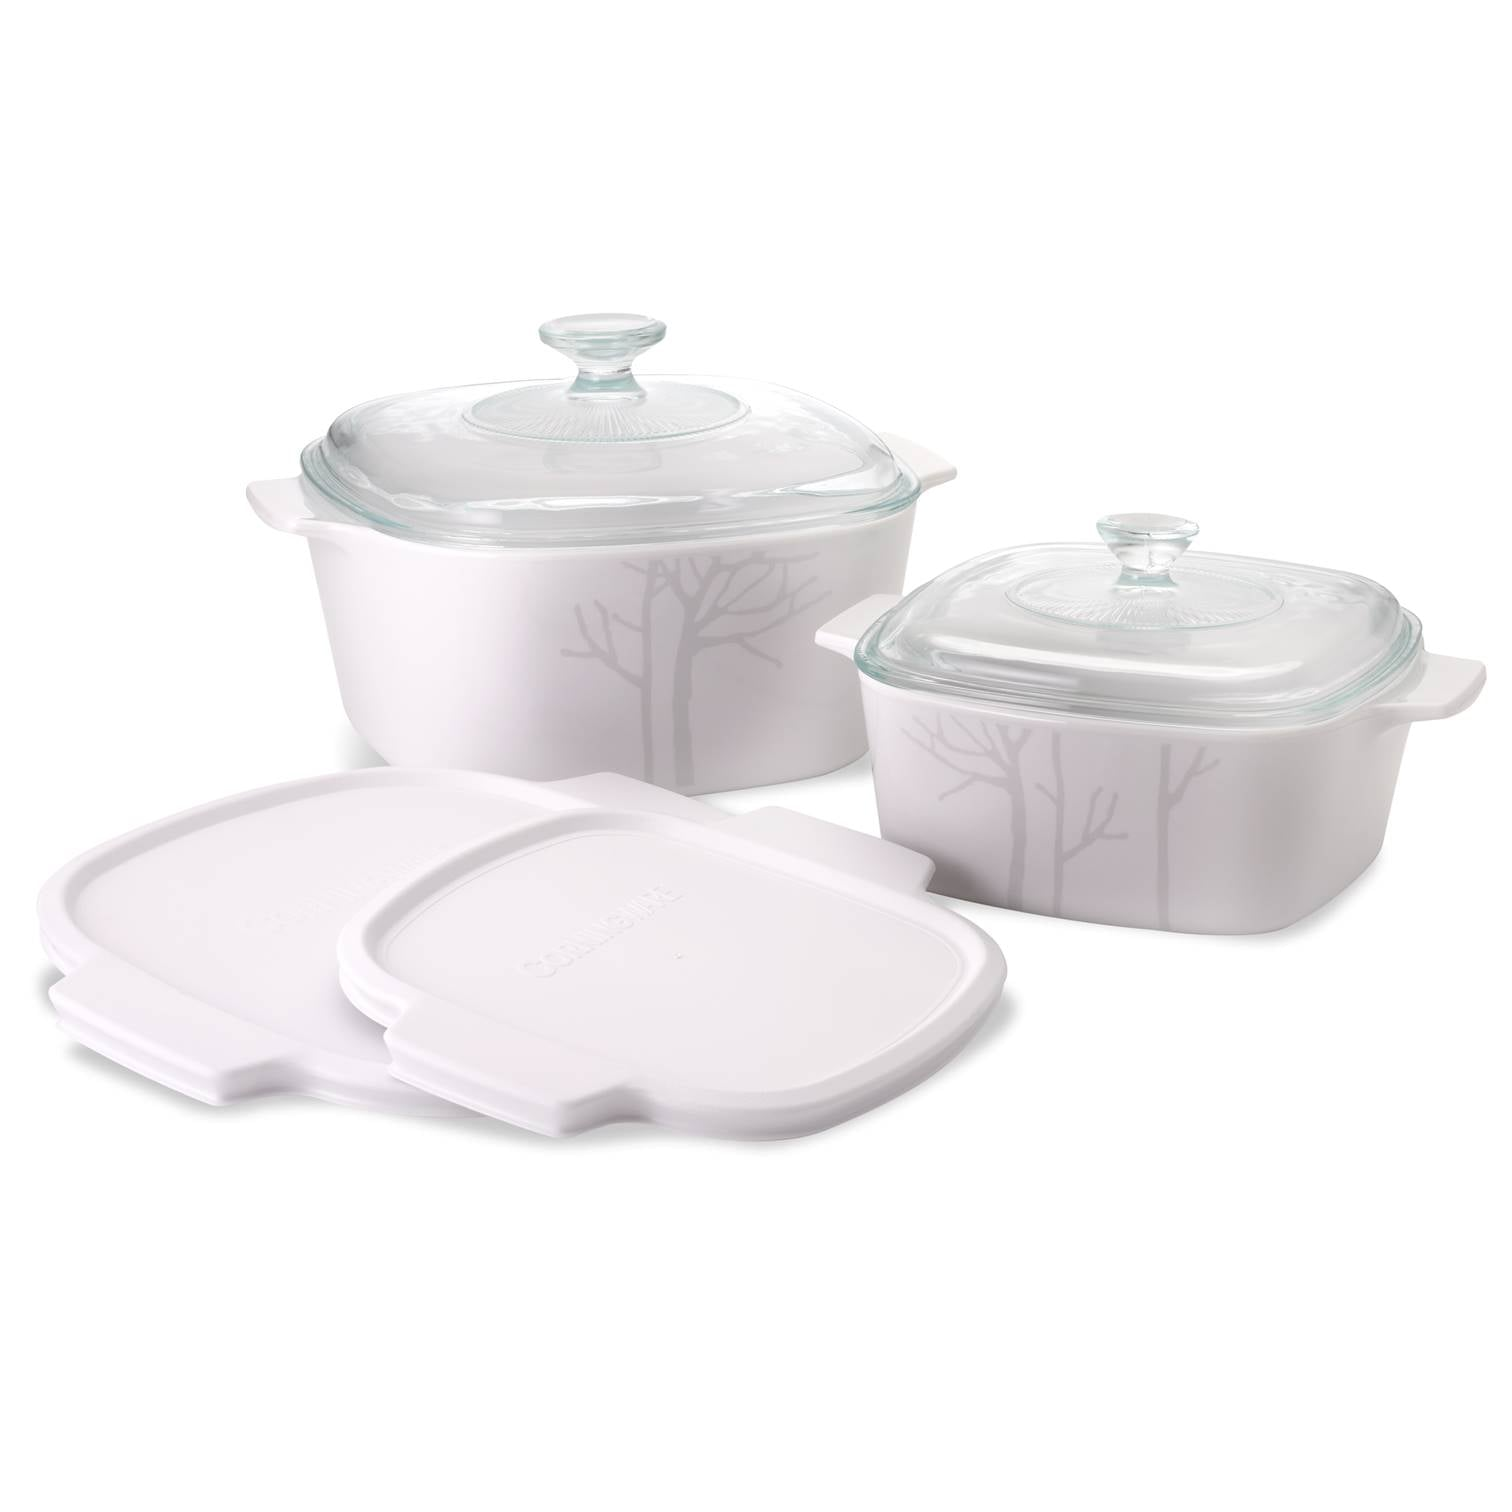 Meal Maker Set, Frost